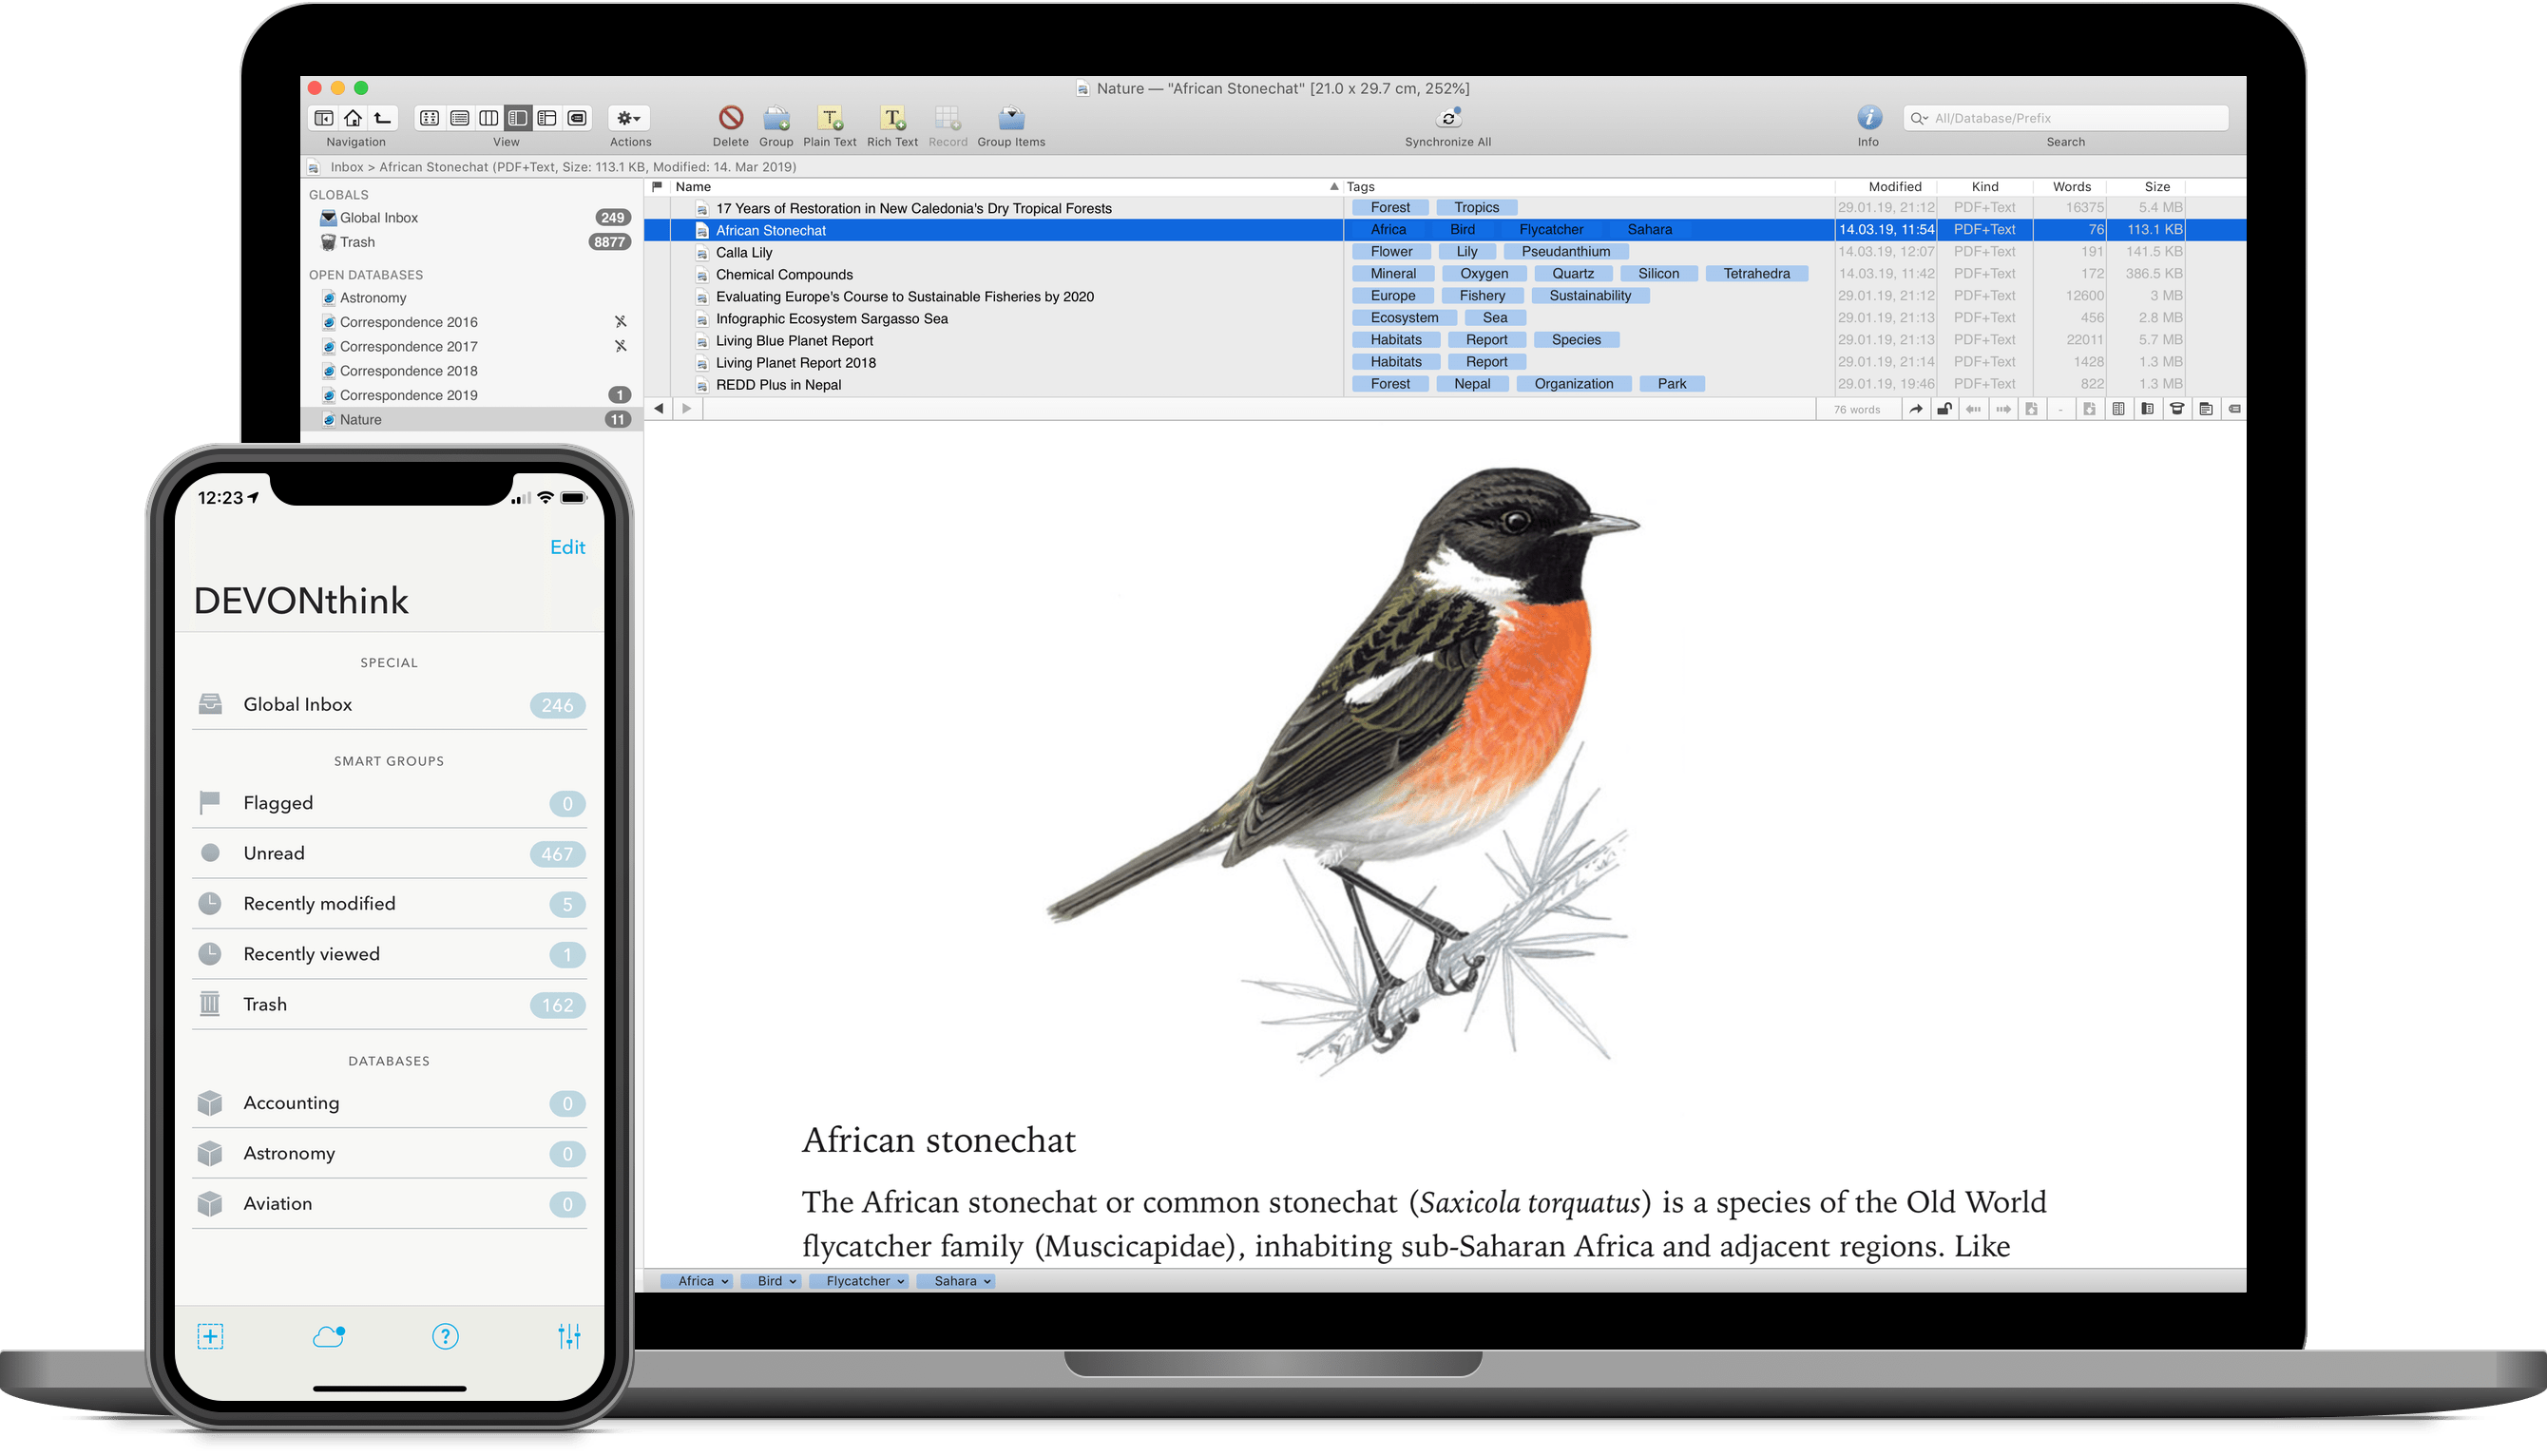 DEVONthink 2.11.3 adds MultiMarkdown 6, CriticMarkup, and more Image